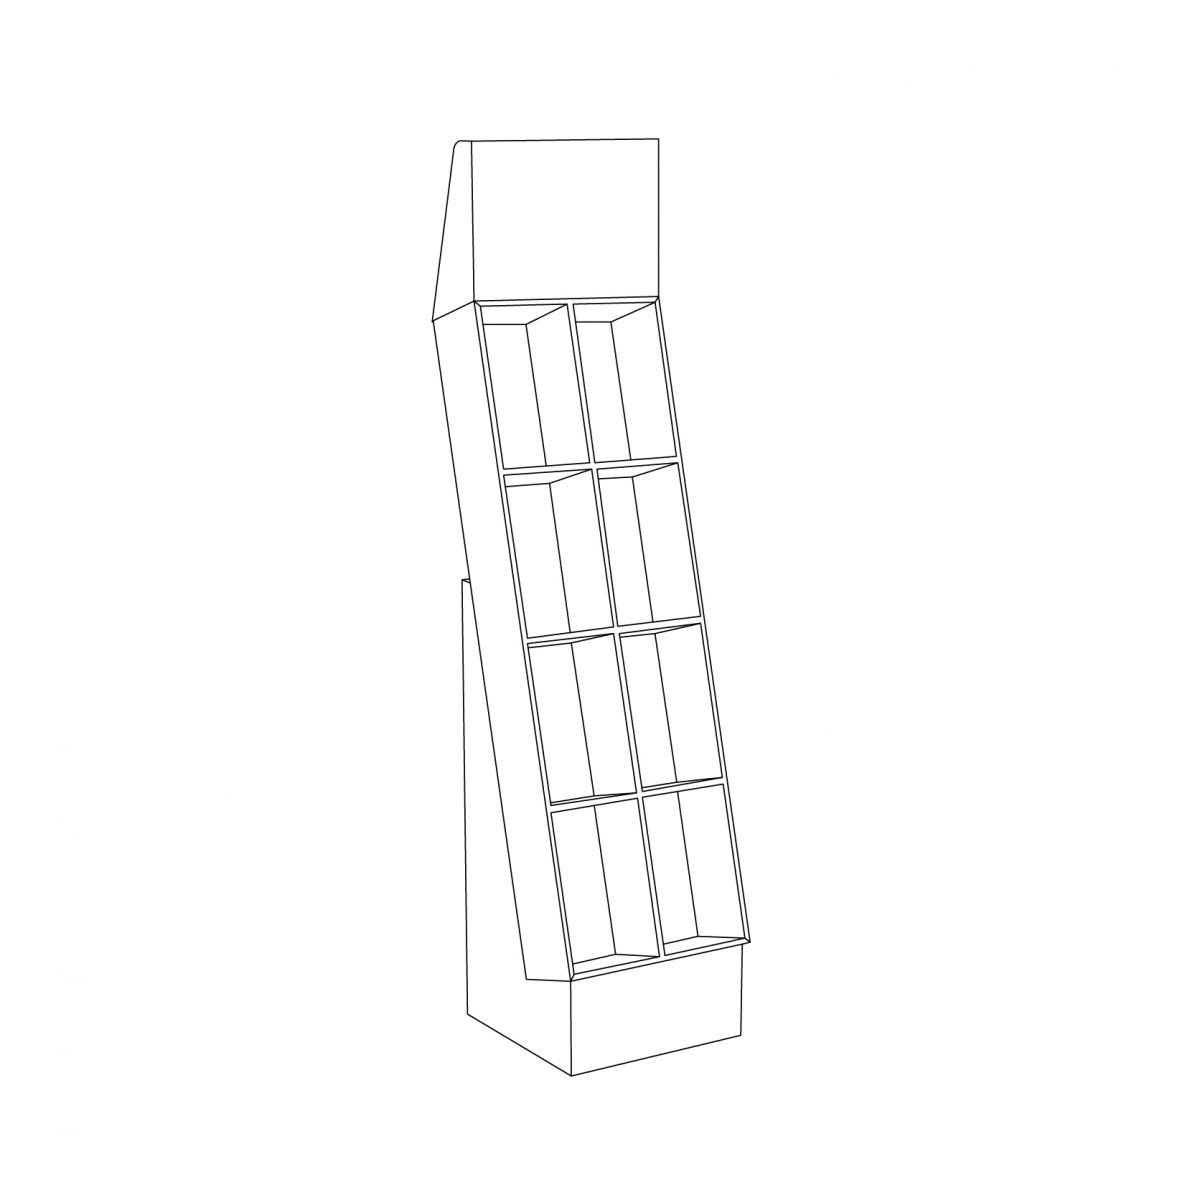 Cardboard floor display with header and 4 shelves and with separator, placed on a small base shelves - outline